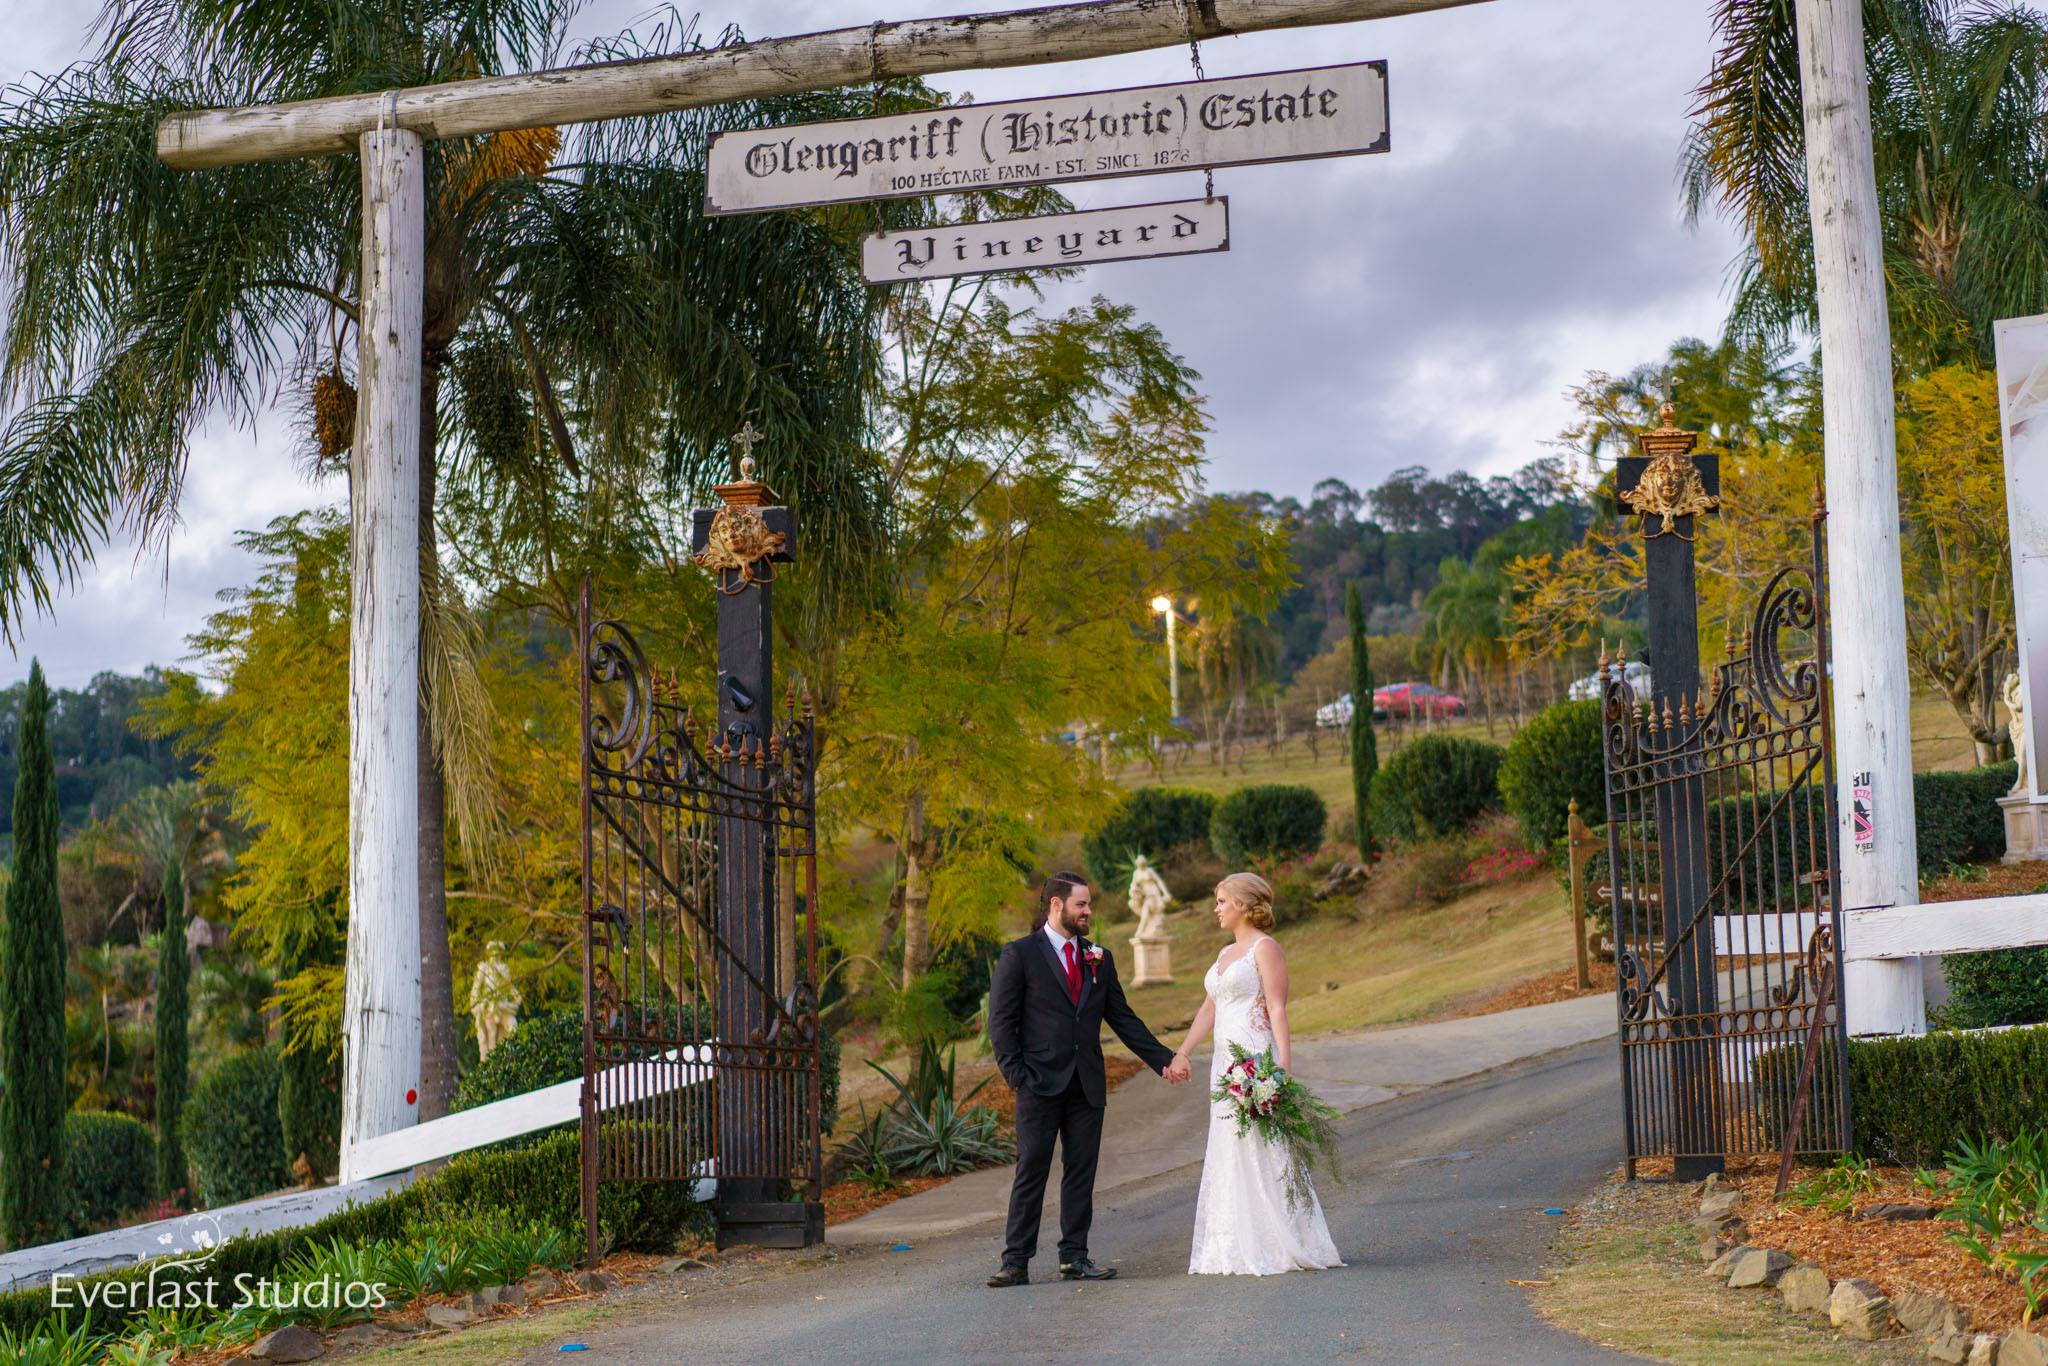 Glengariff Wedding at Gate.jpg